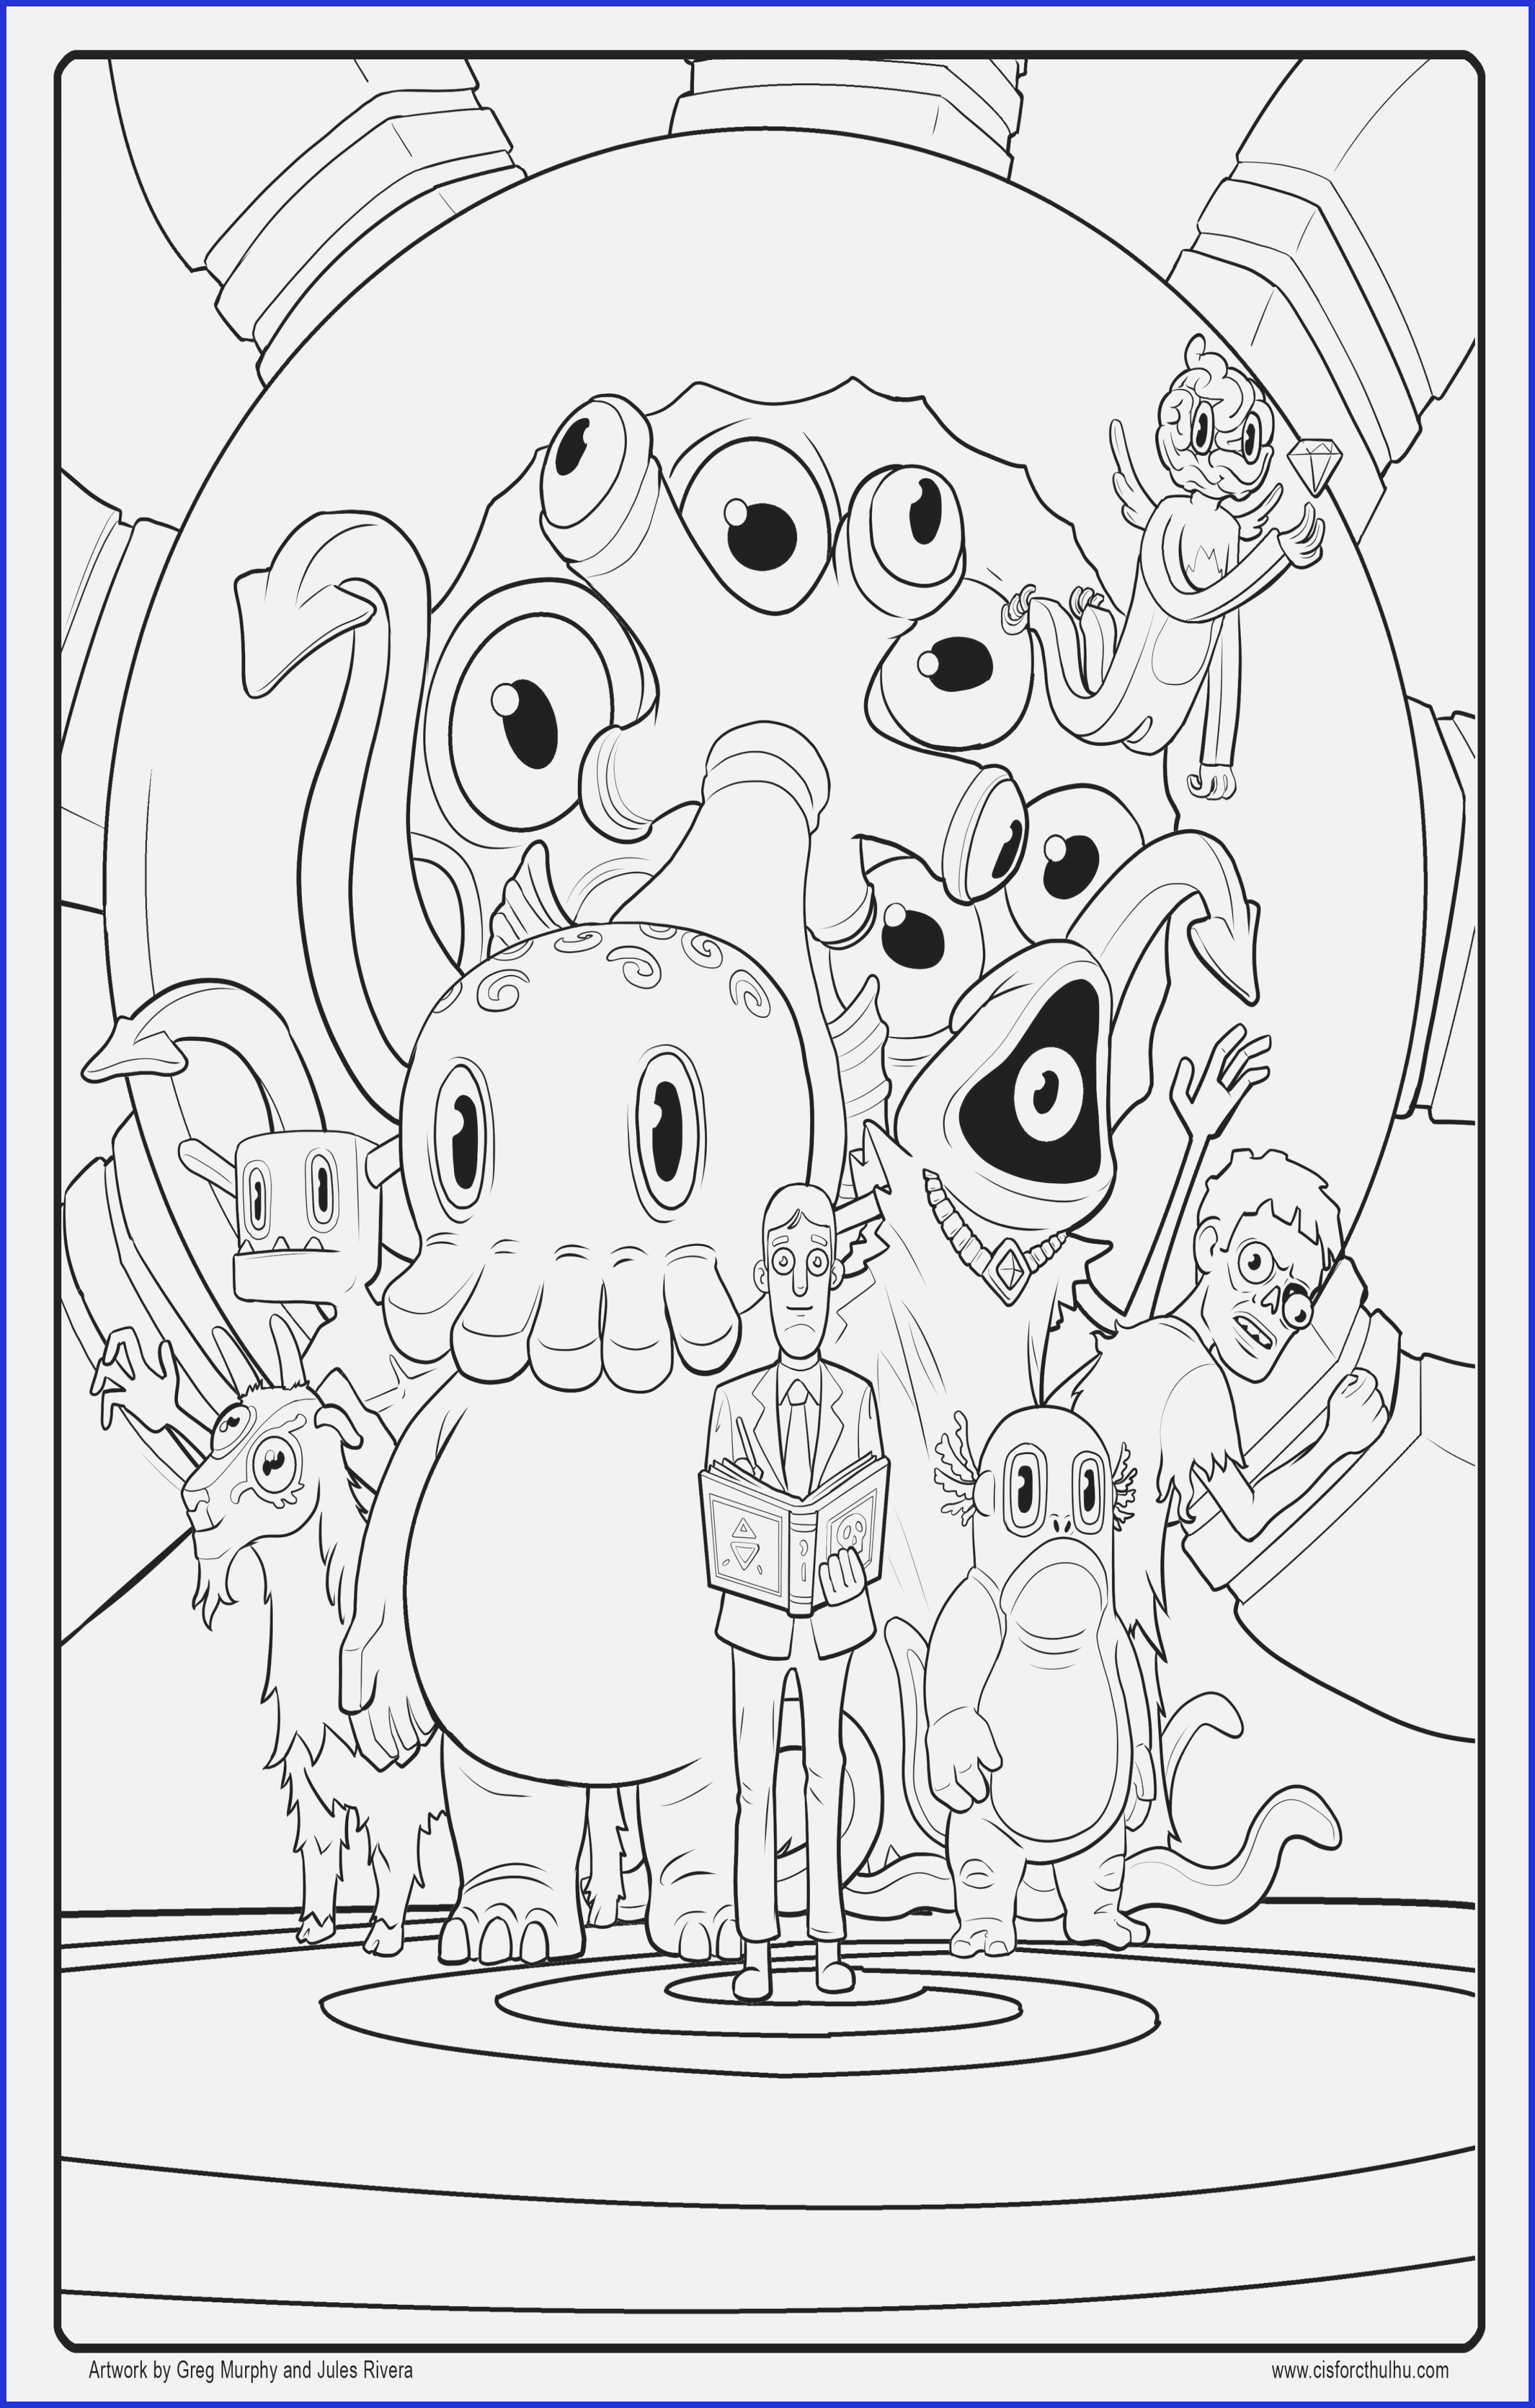 Halloween Frankenstein Coloring Pages Halloween Frankenstein Coloring Pages Wwwgsfl